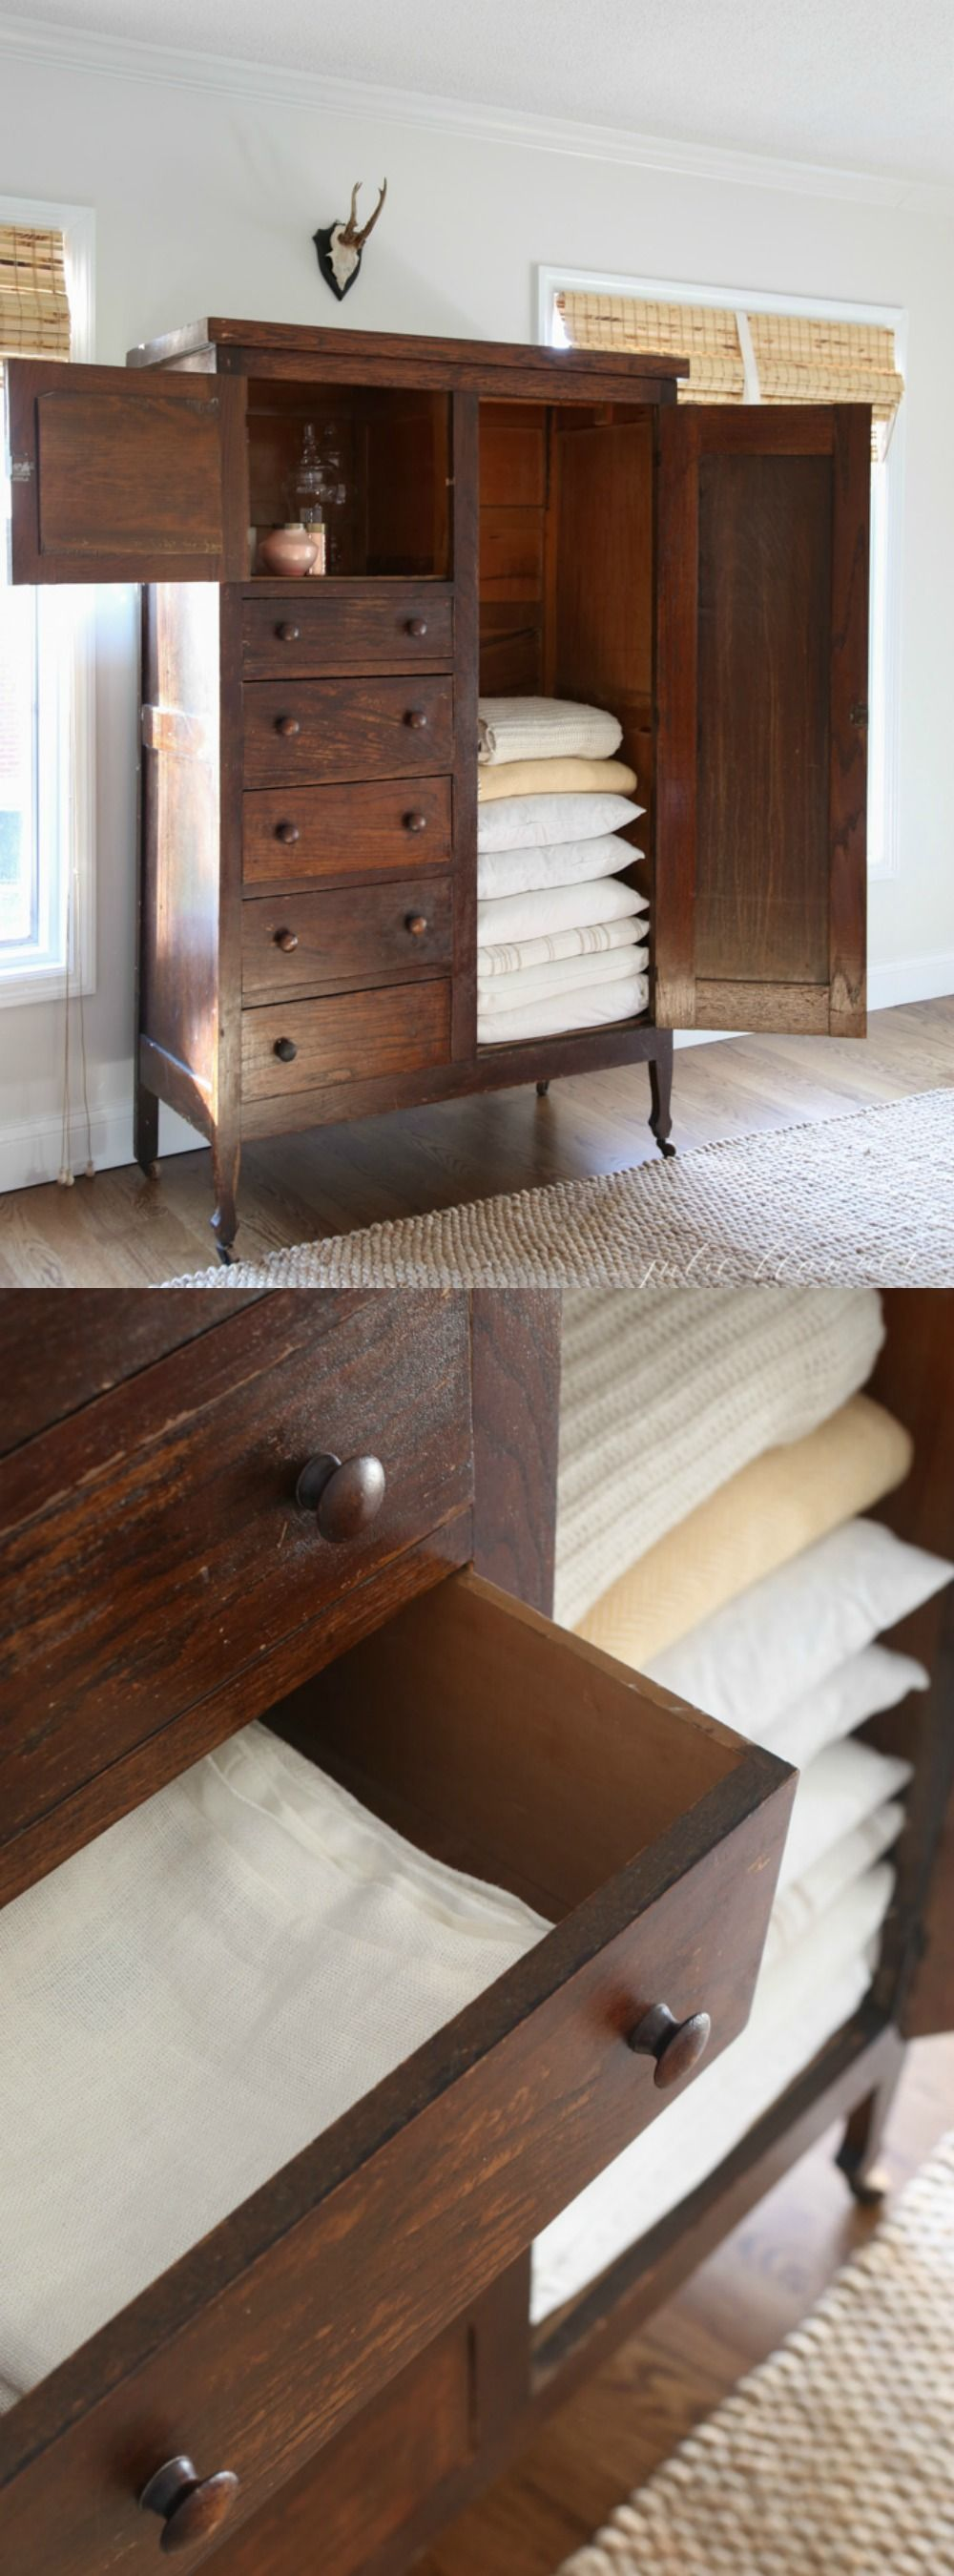 Delightful Convert A Wardrobe Or Armoire Into A Linen Cabinet To Store Extra Blankets,  Pillows,